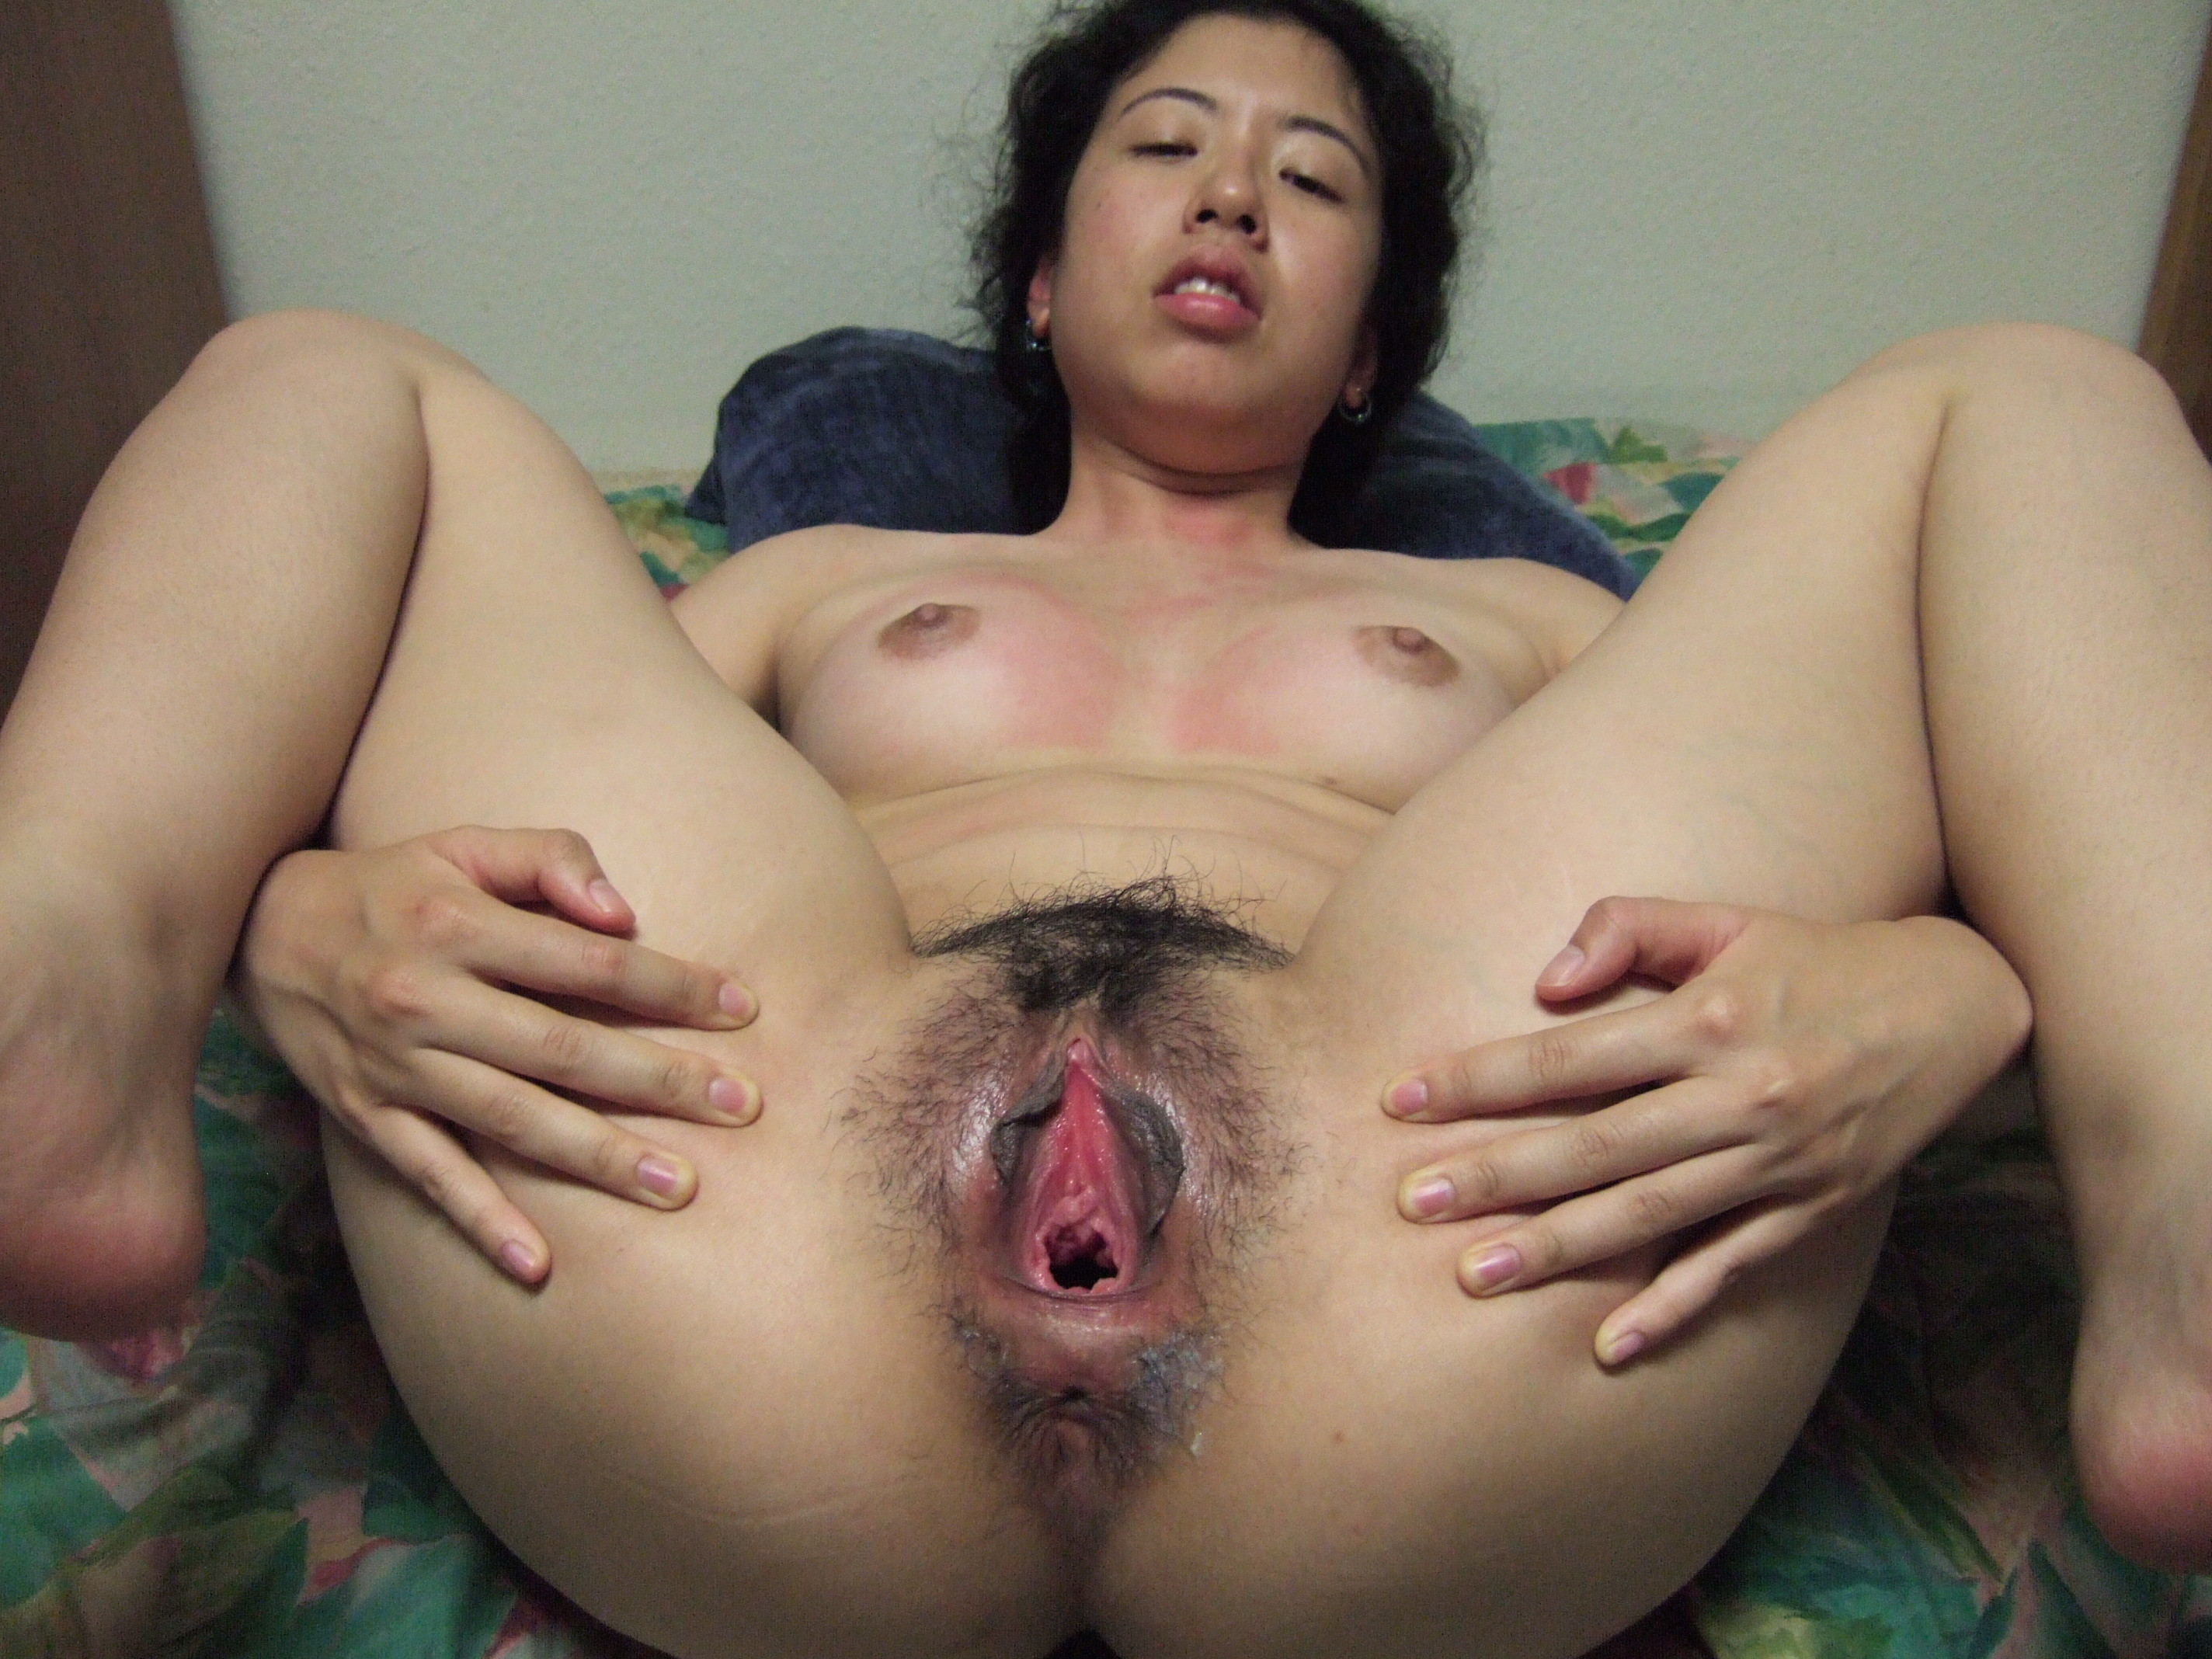 Hairy thick asian women naked